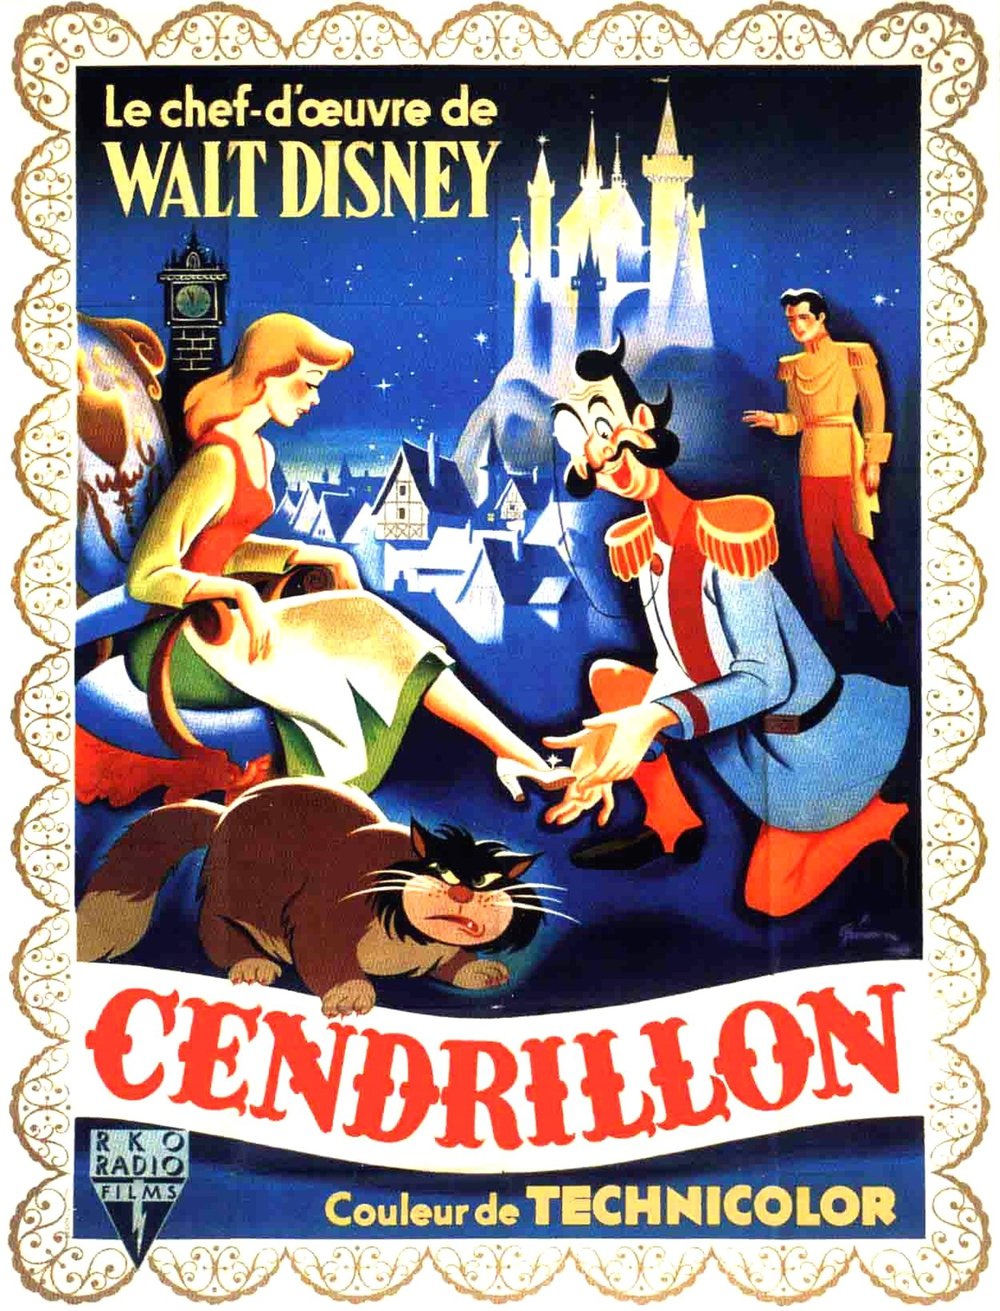 cendrillon wiki once upon a time fandom powered by wikia. Black Bedroom Furniture Sets. Home Design Ideas